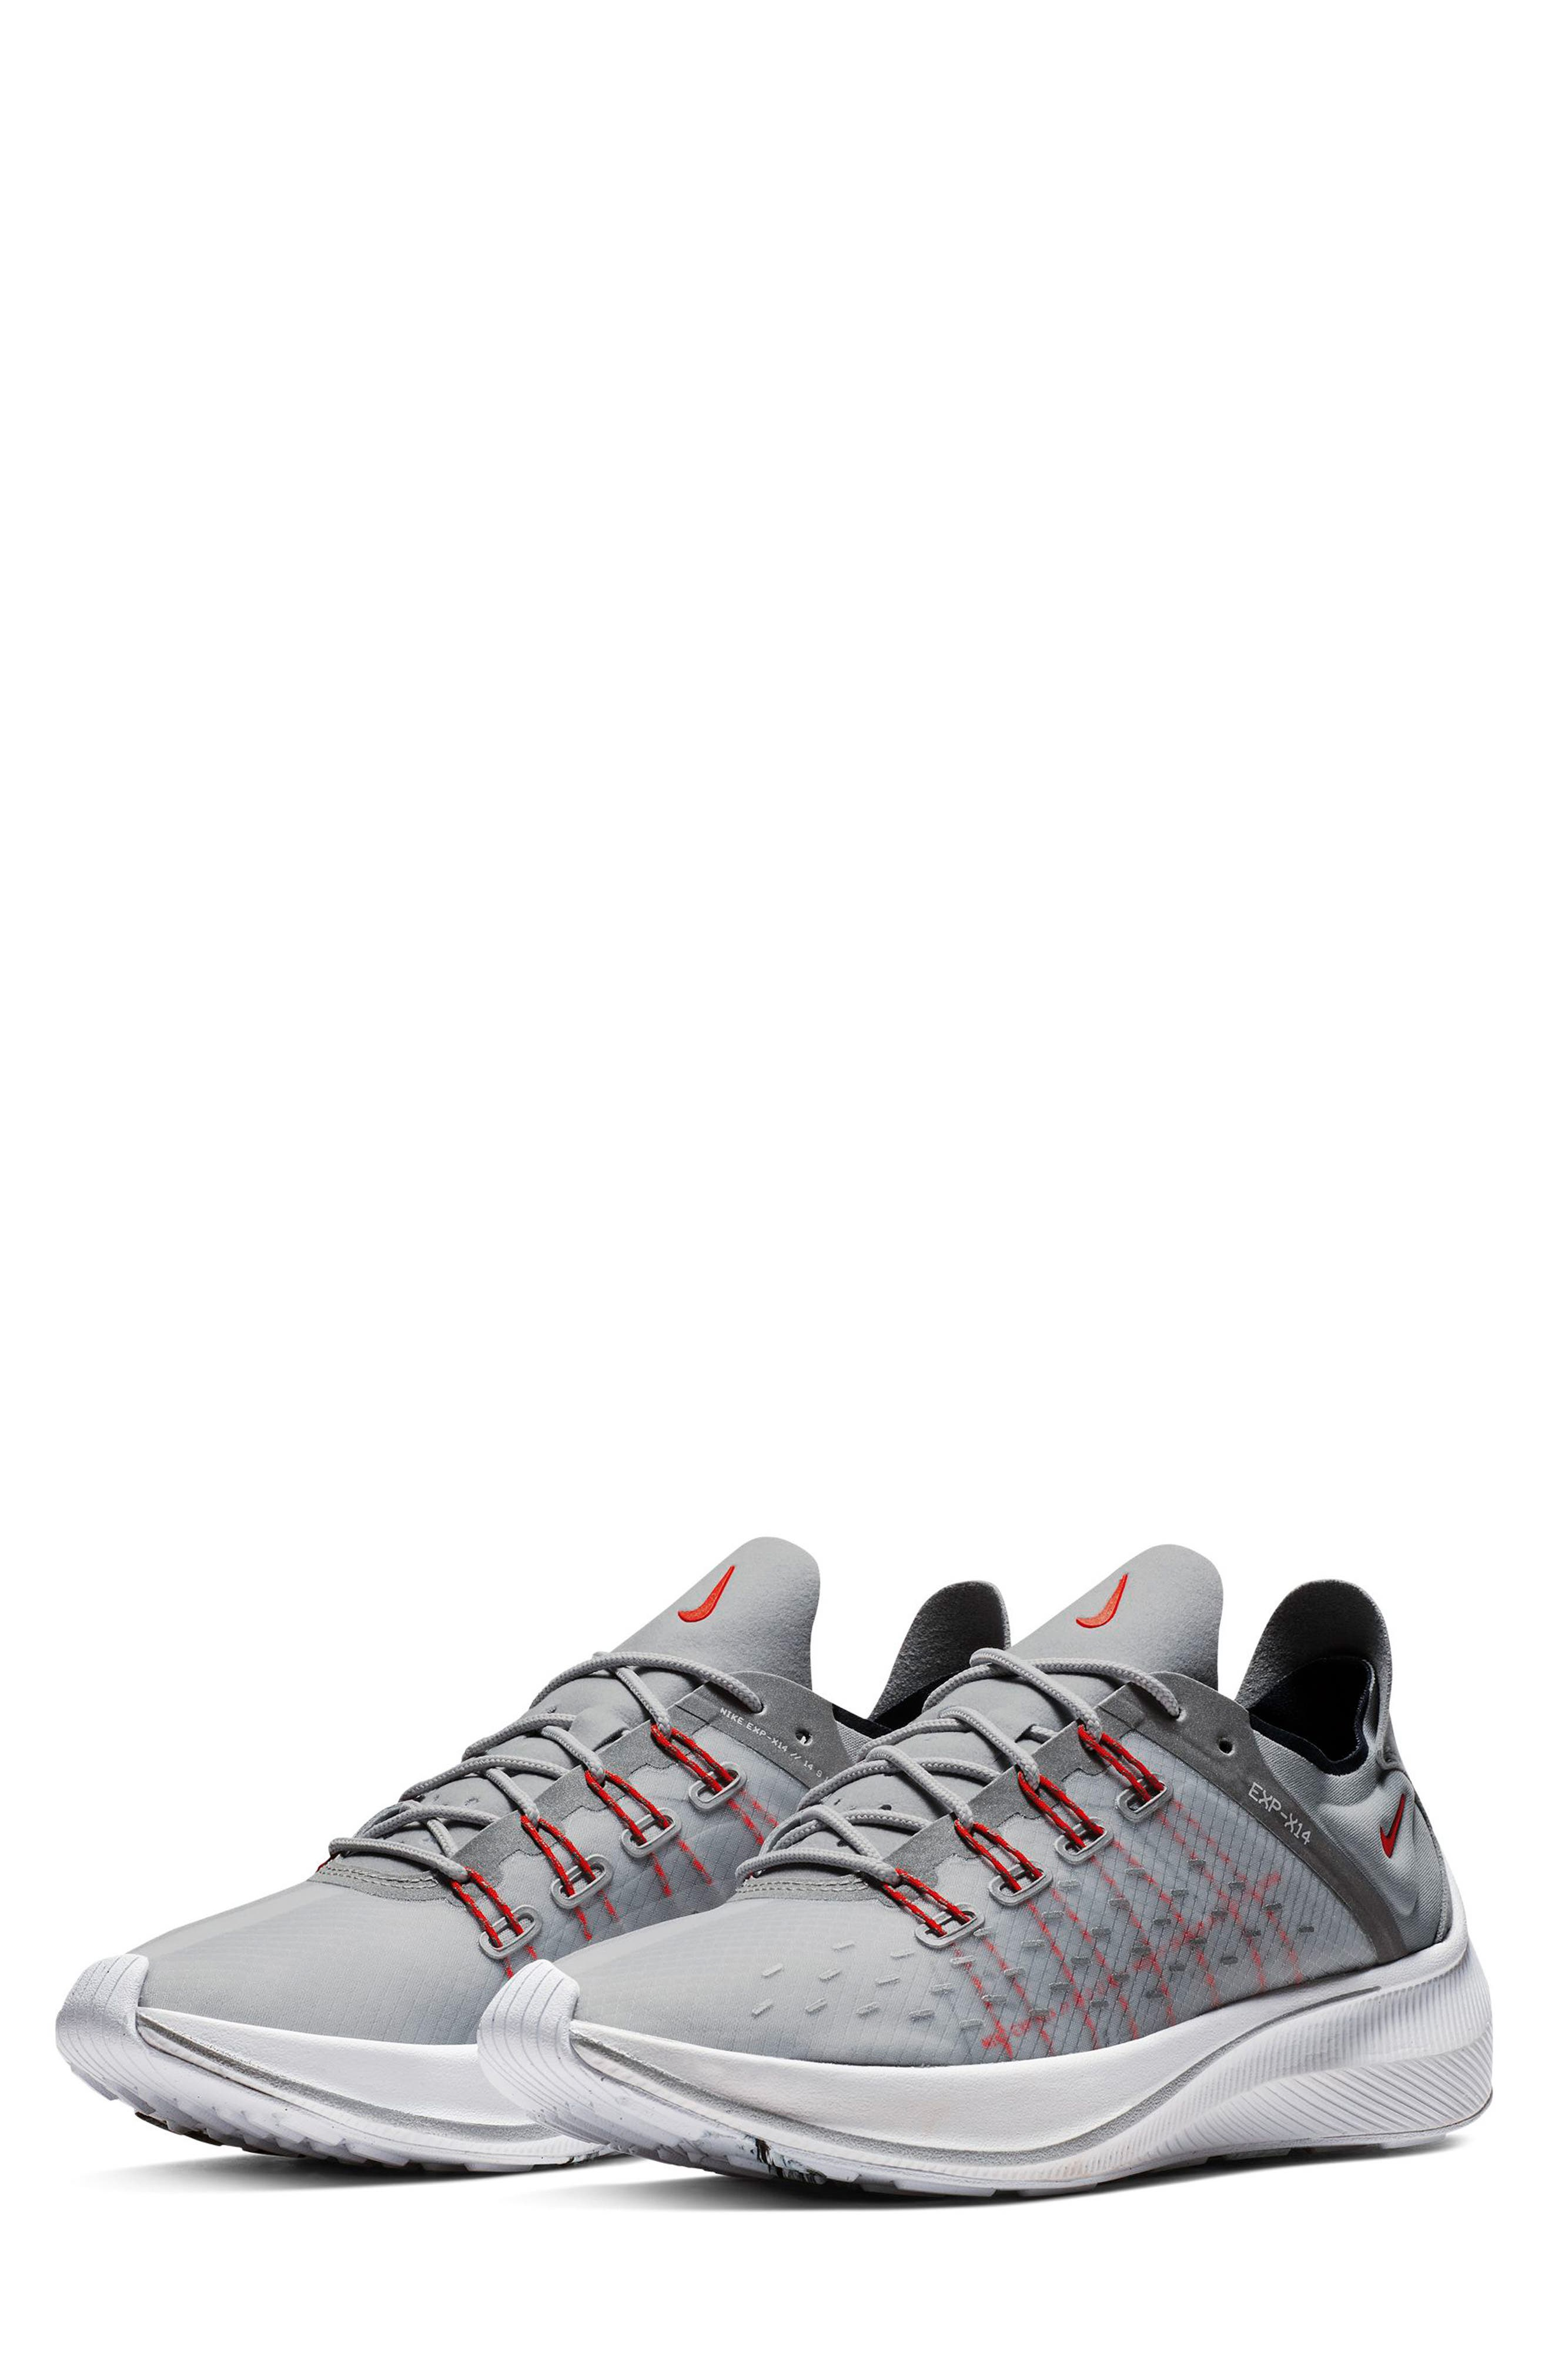 EXP-X14 HR Running Shoe,                             Main thumbnail 1, color,                             SILVER/ CRIMSON/ OBSIDIAN